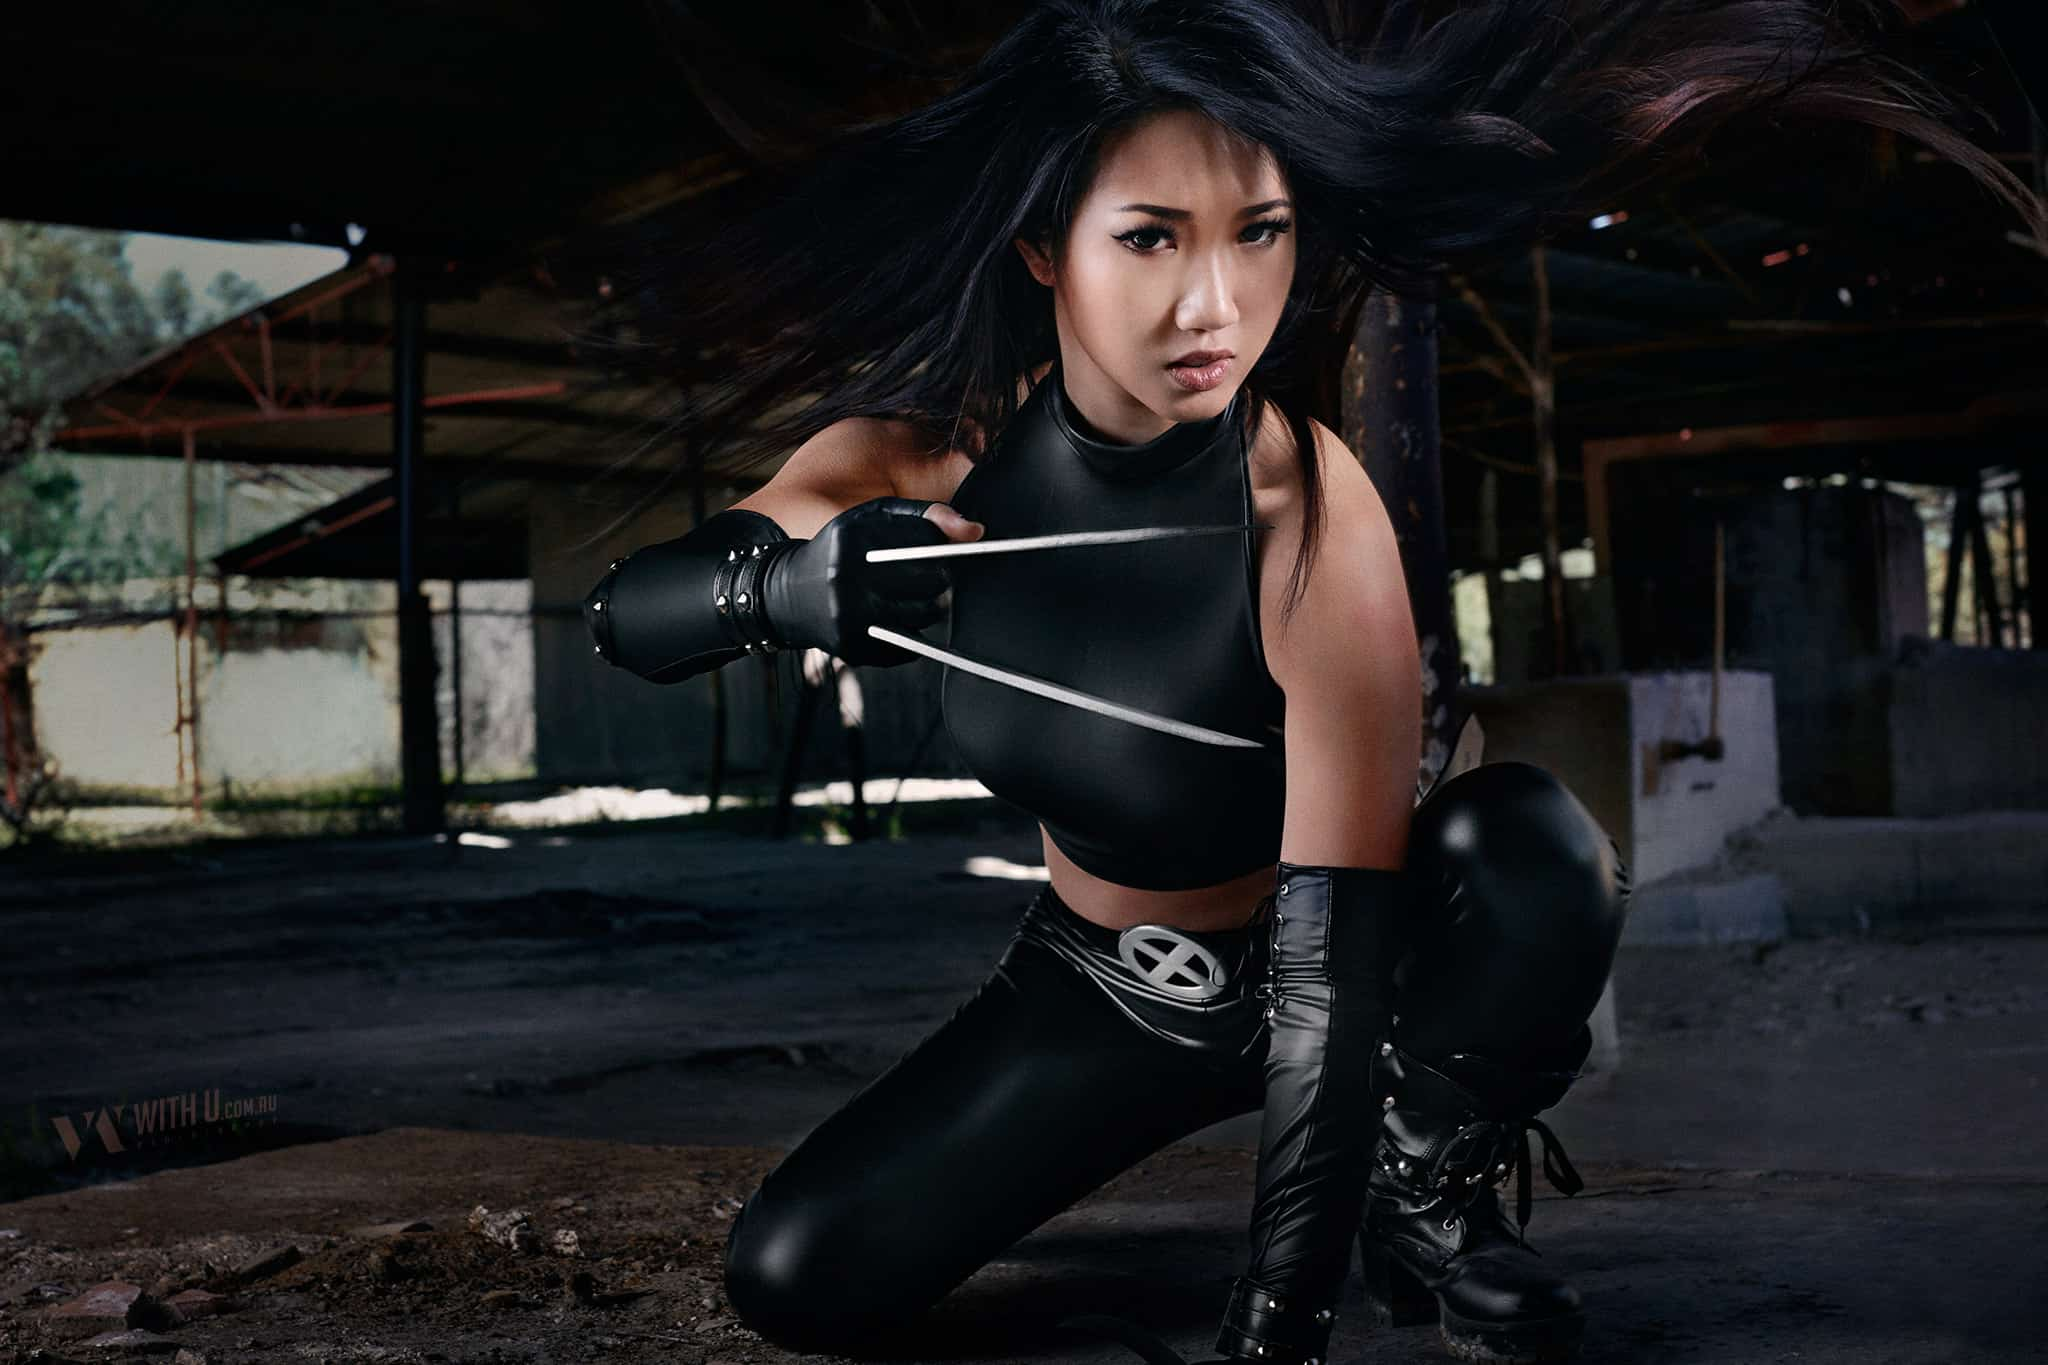 X 23 Cosplay The Top 11 X-23 Cospla...